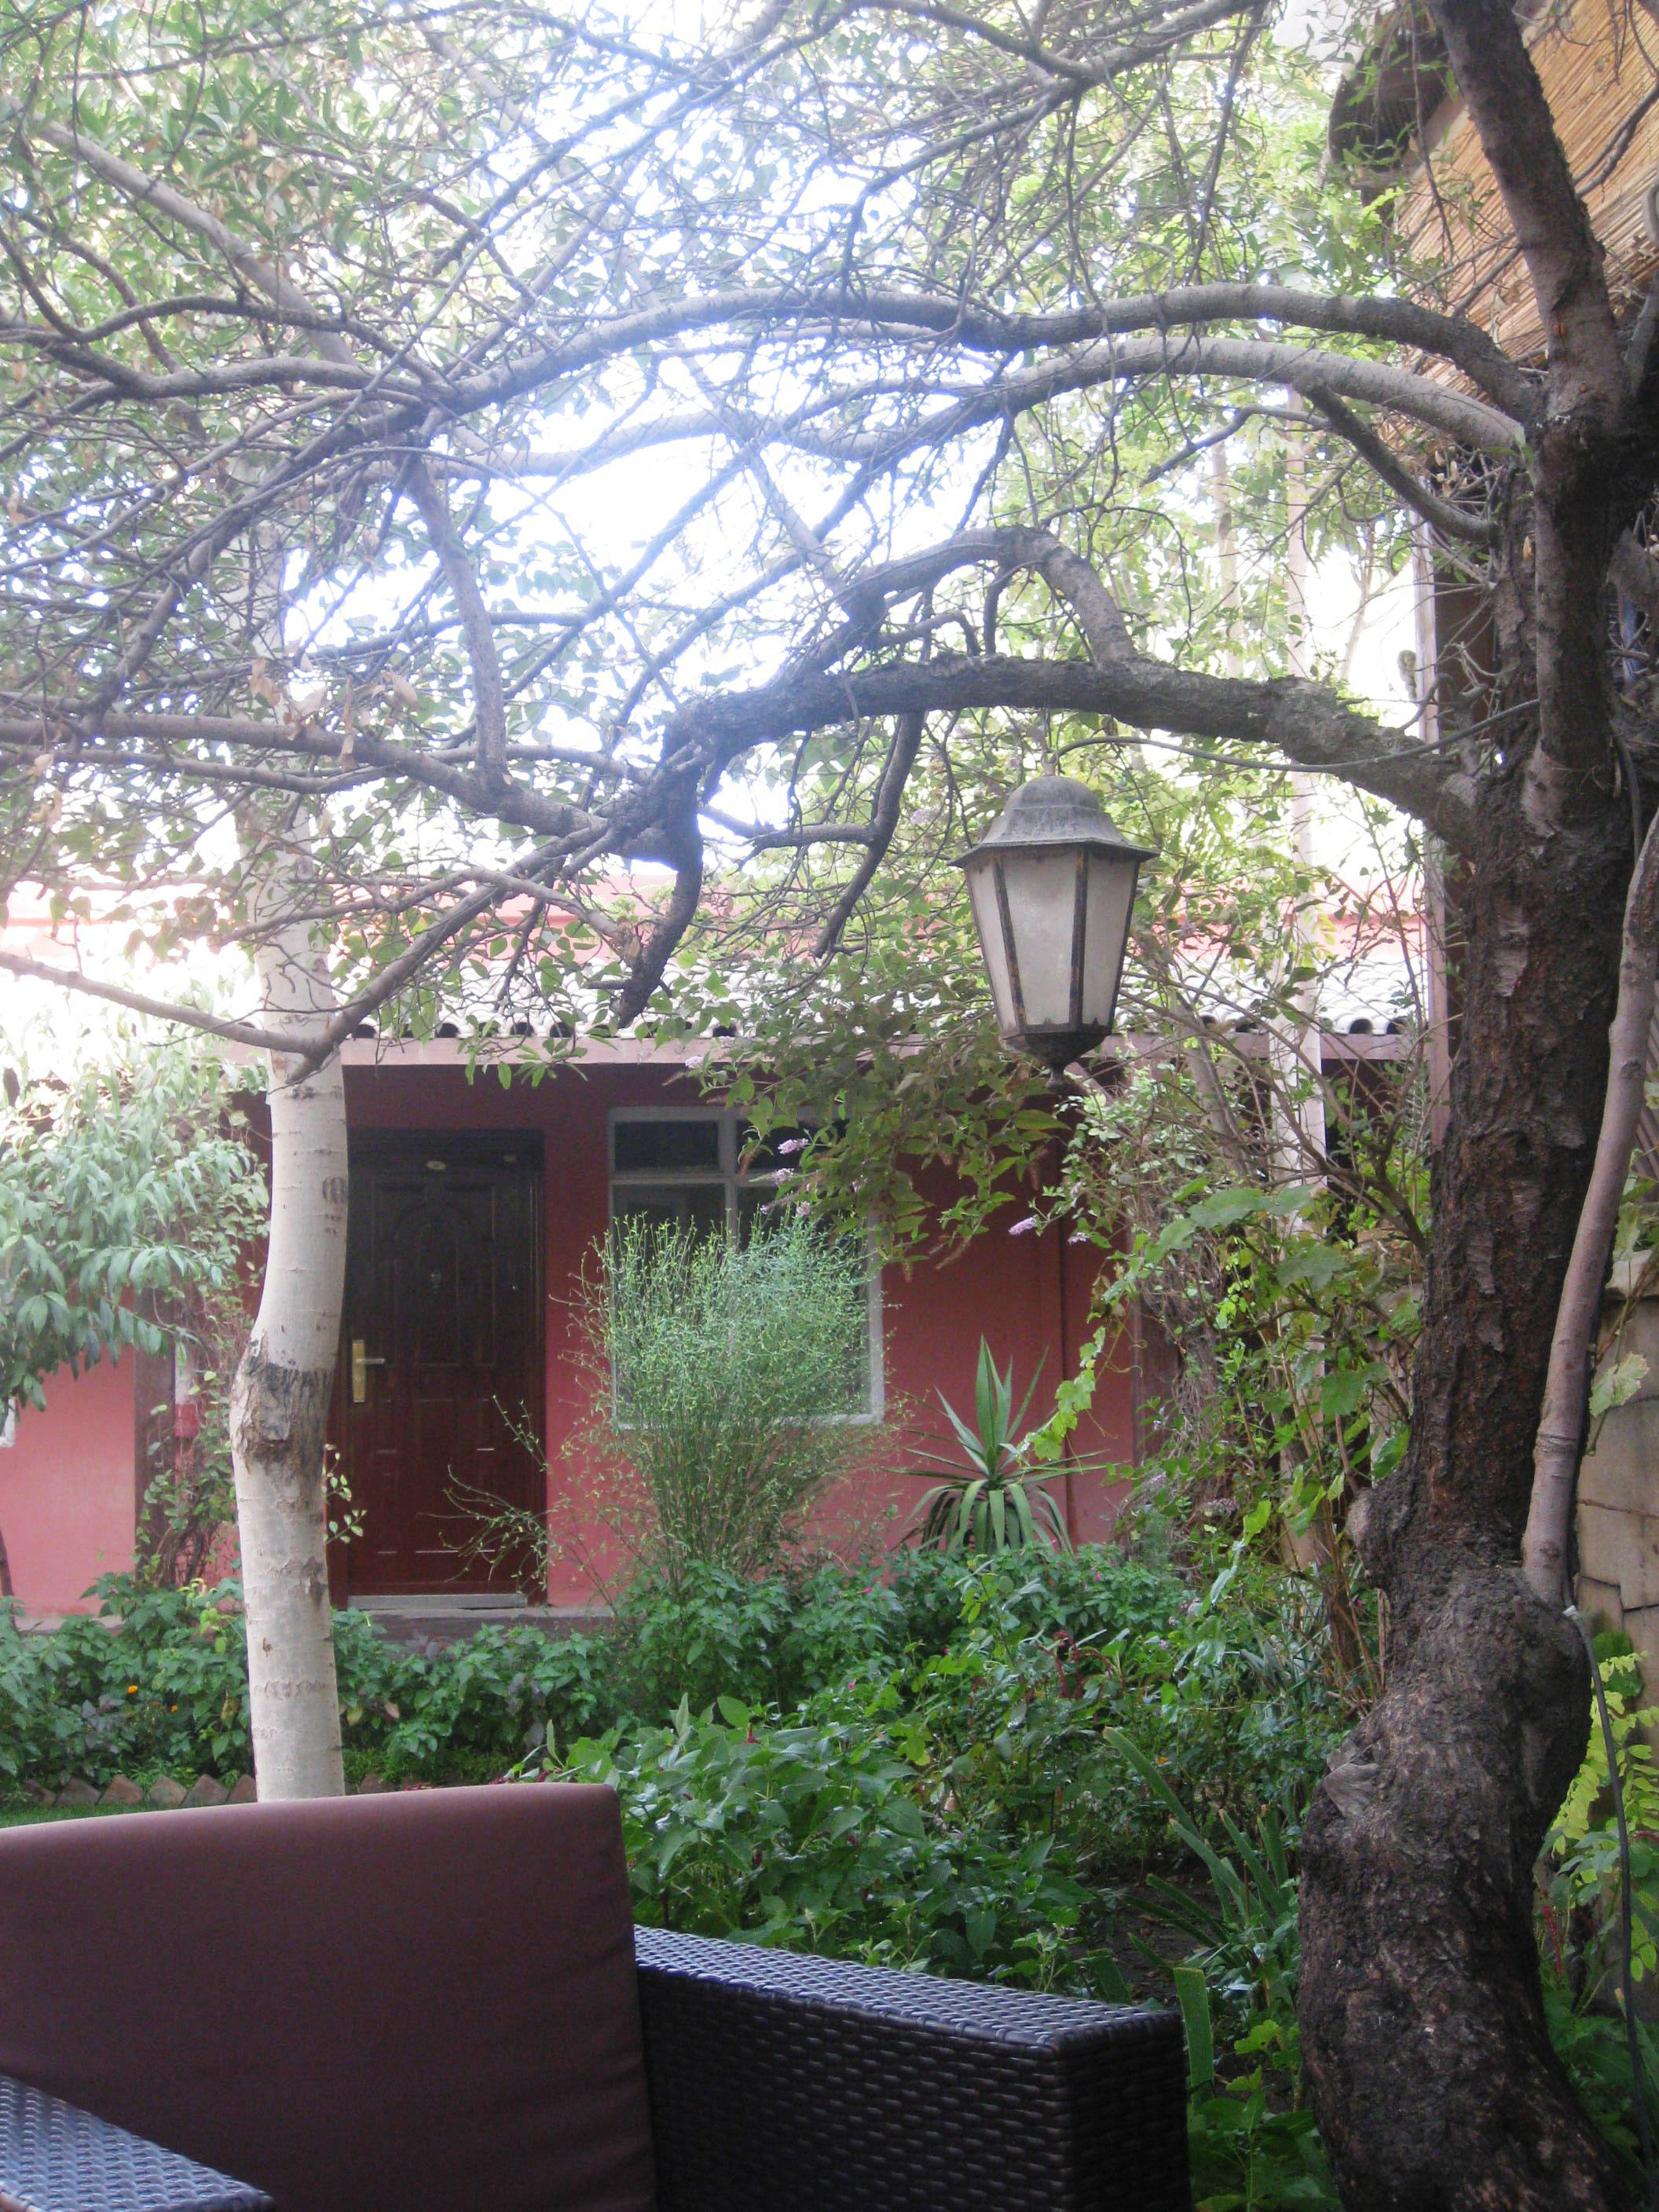 The garden in my guest house. Sometimes different can be just fine!